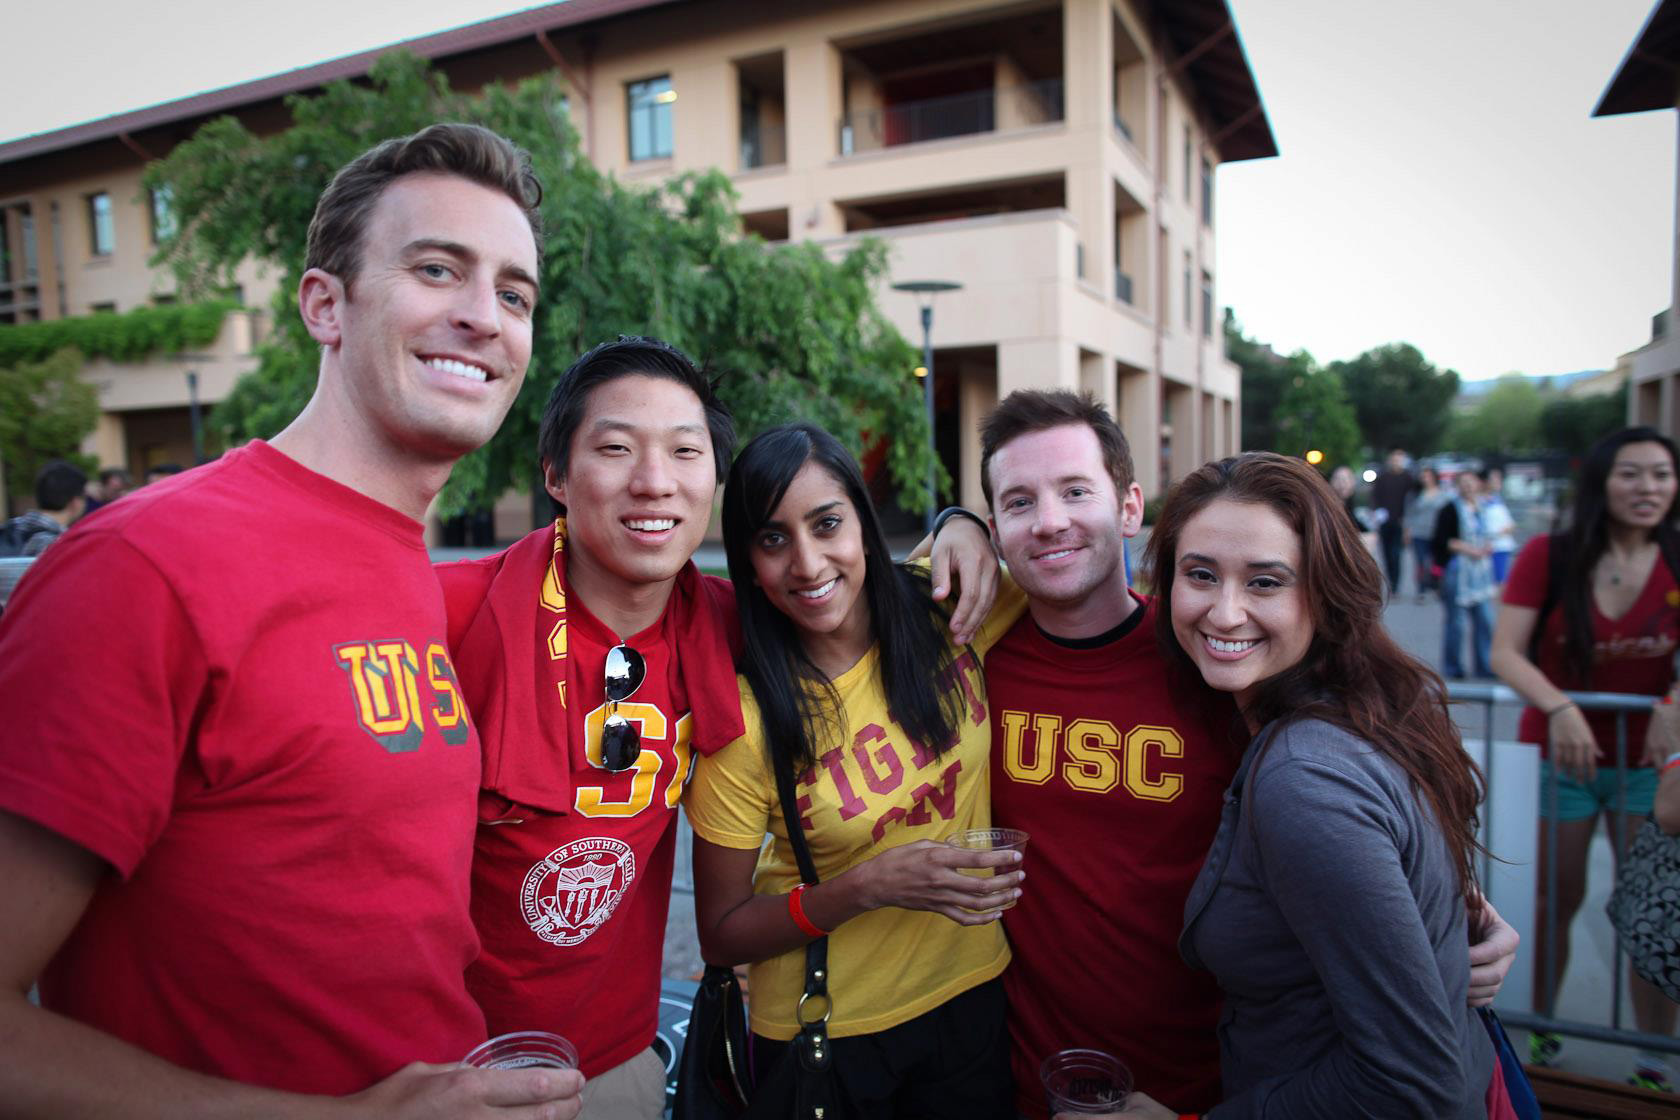 USC Marshall students participated in the Challenge for Charity at Stanford University.